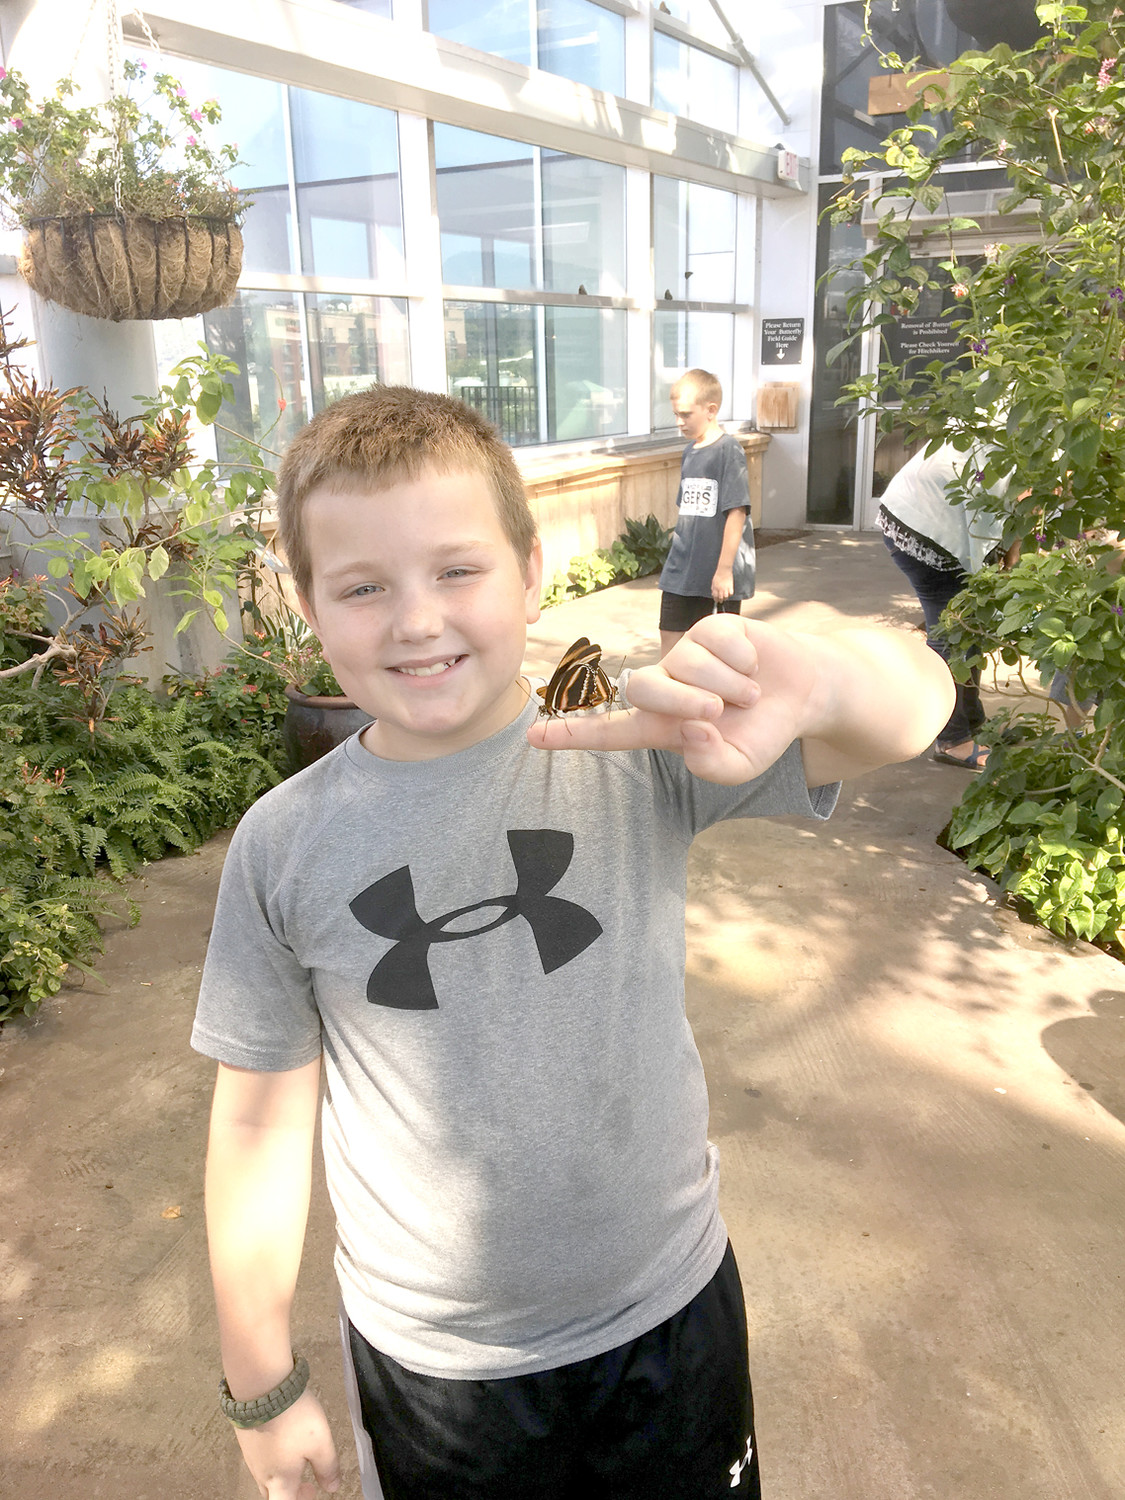 TATEN HILL from Miss Smith's fourth-grade class at Taylor Elementary shows off the new butterfly friend he met while on a field trip to the Tennessee Aquarium.